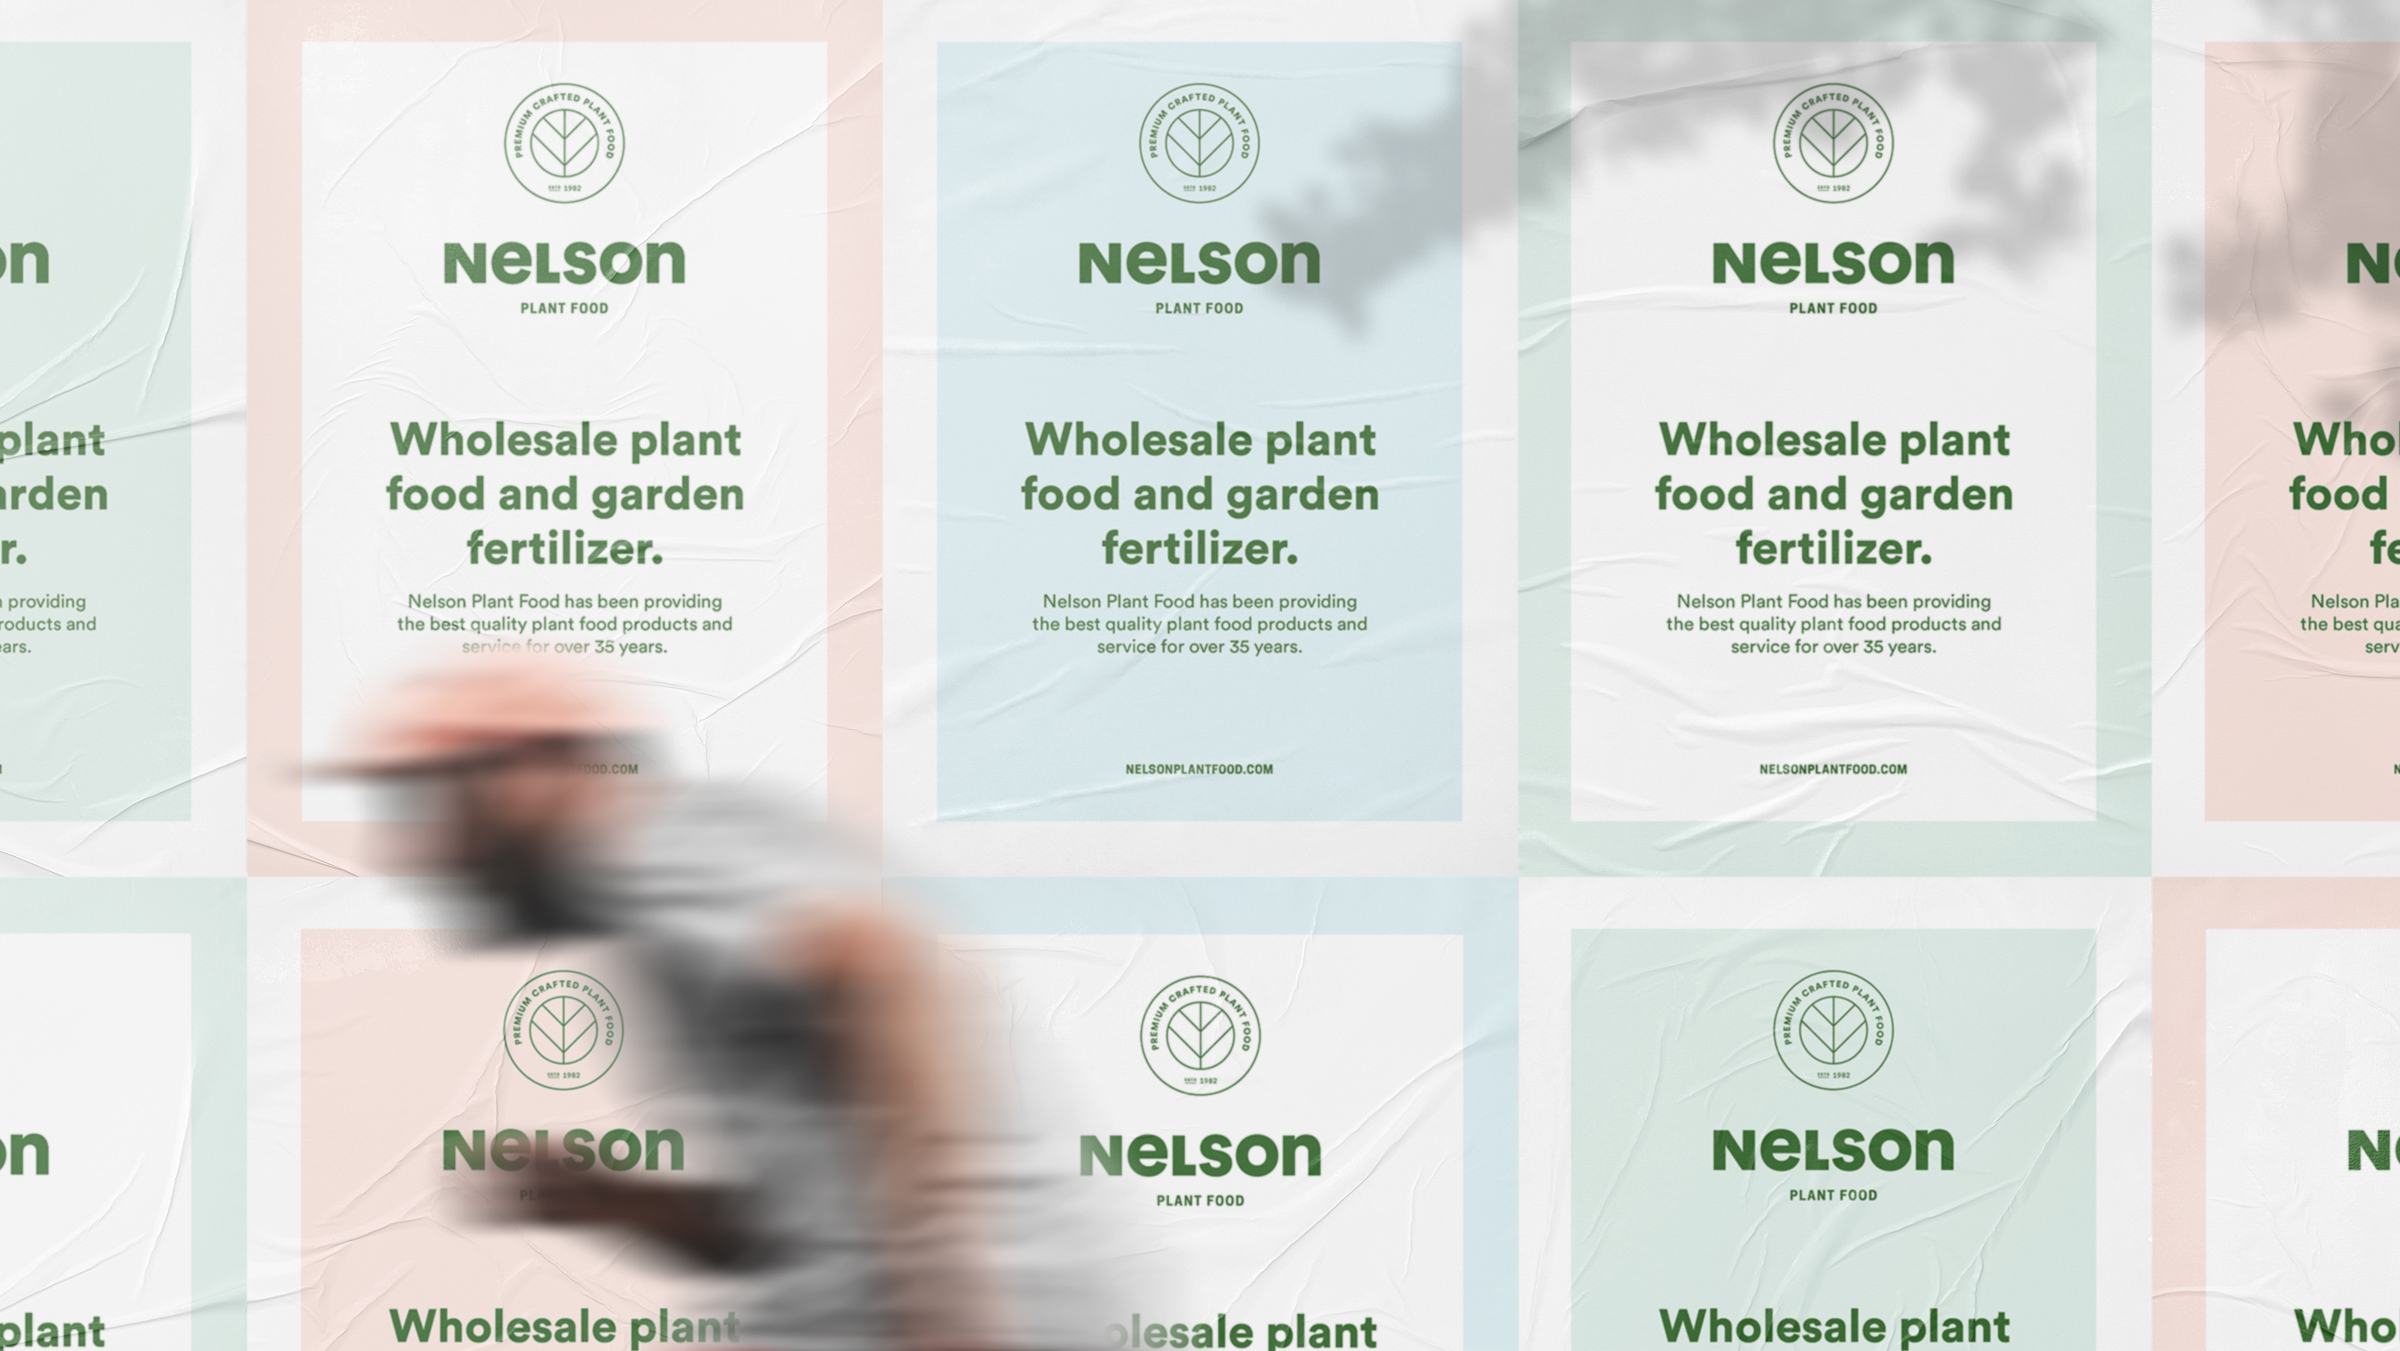 Nelson Plant Food brand marketing posters